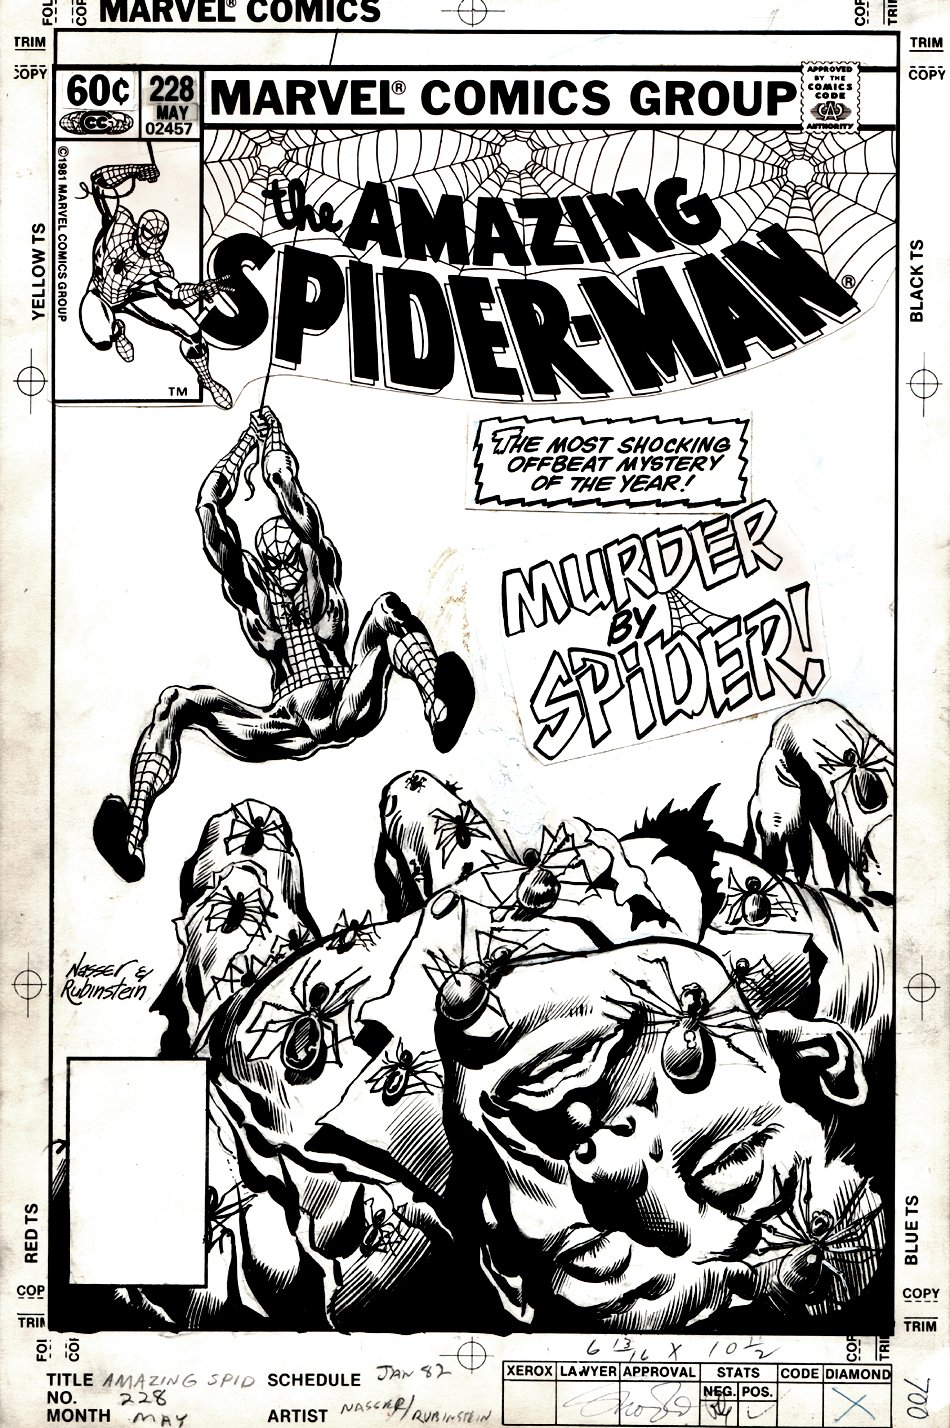 Amazing Spider-Man #228 (MURDER BY SPIDER) Cover - 1982